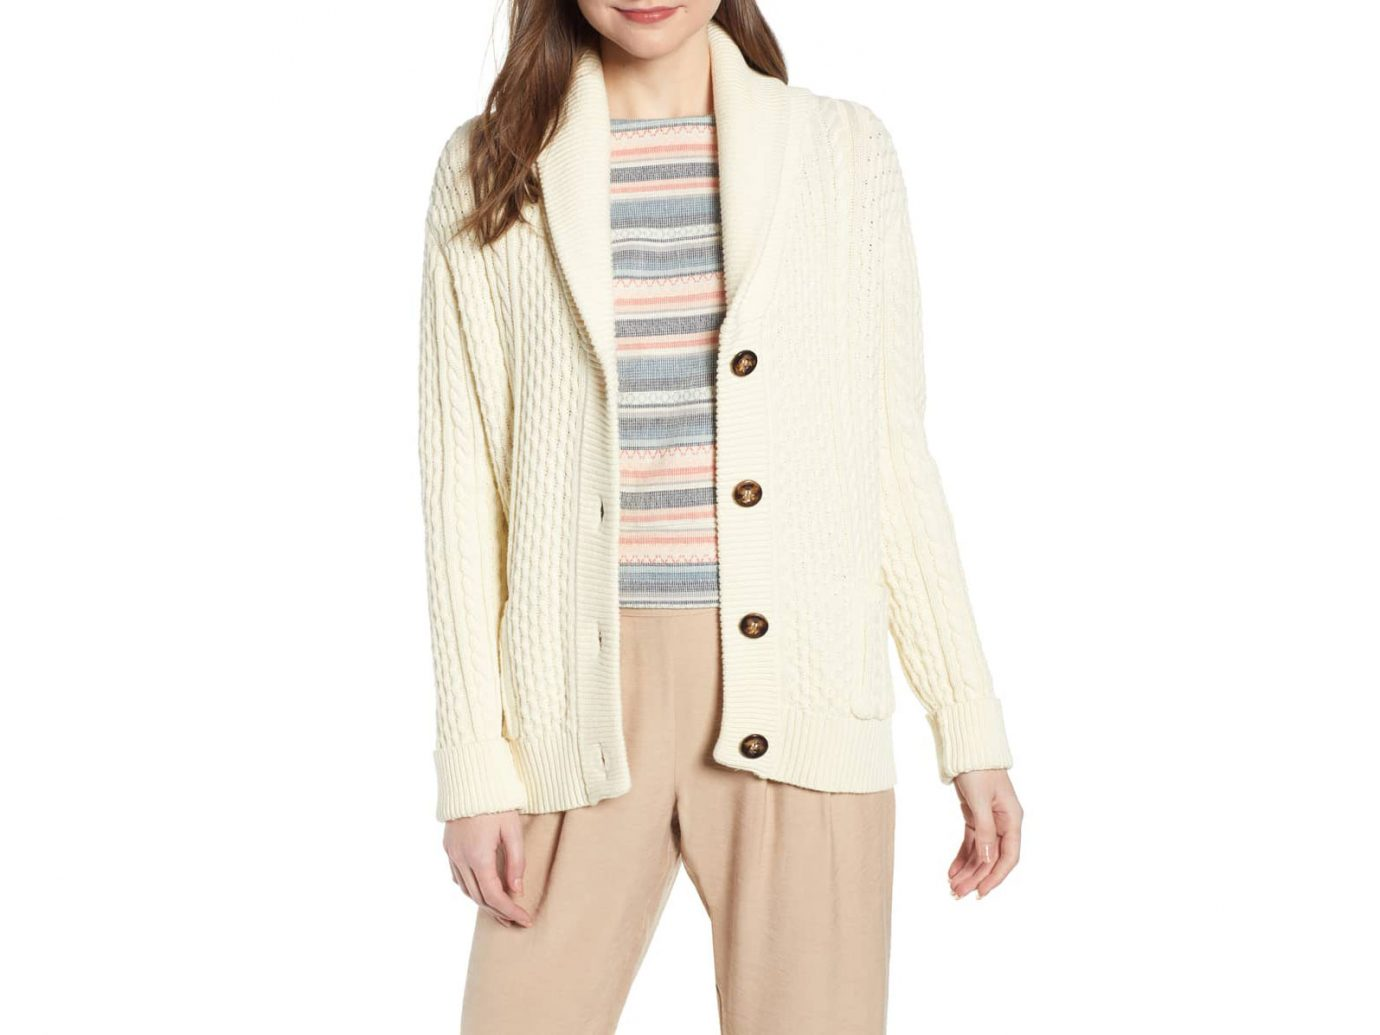 Damsel x THE ODELLS Fisherman Cardigan